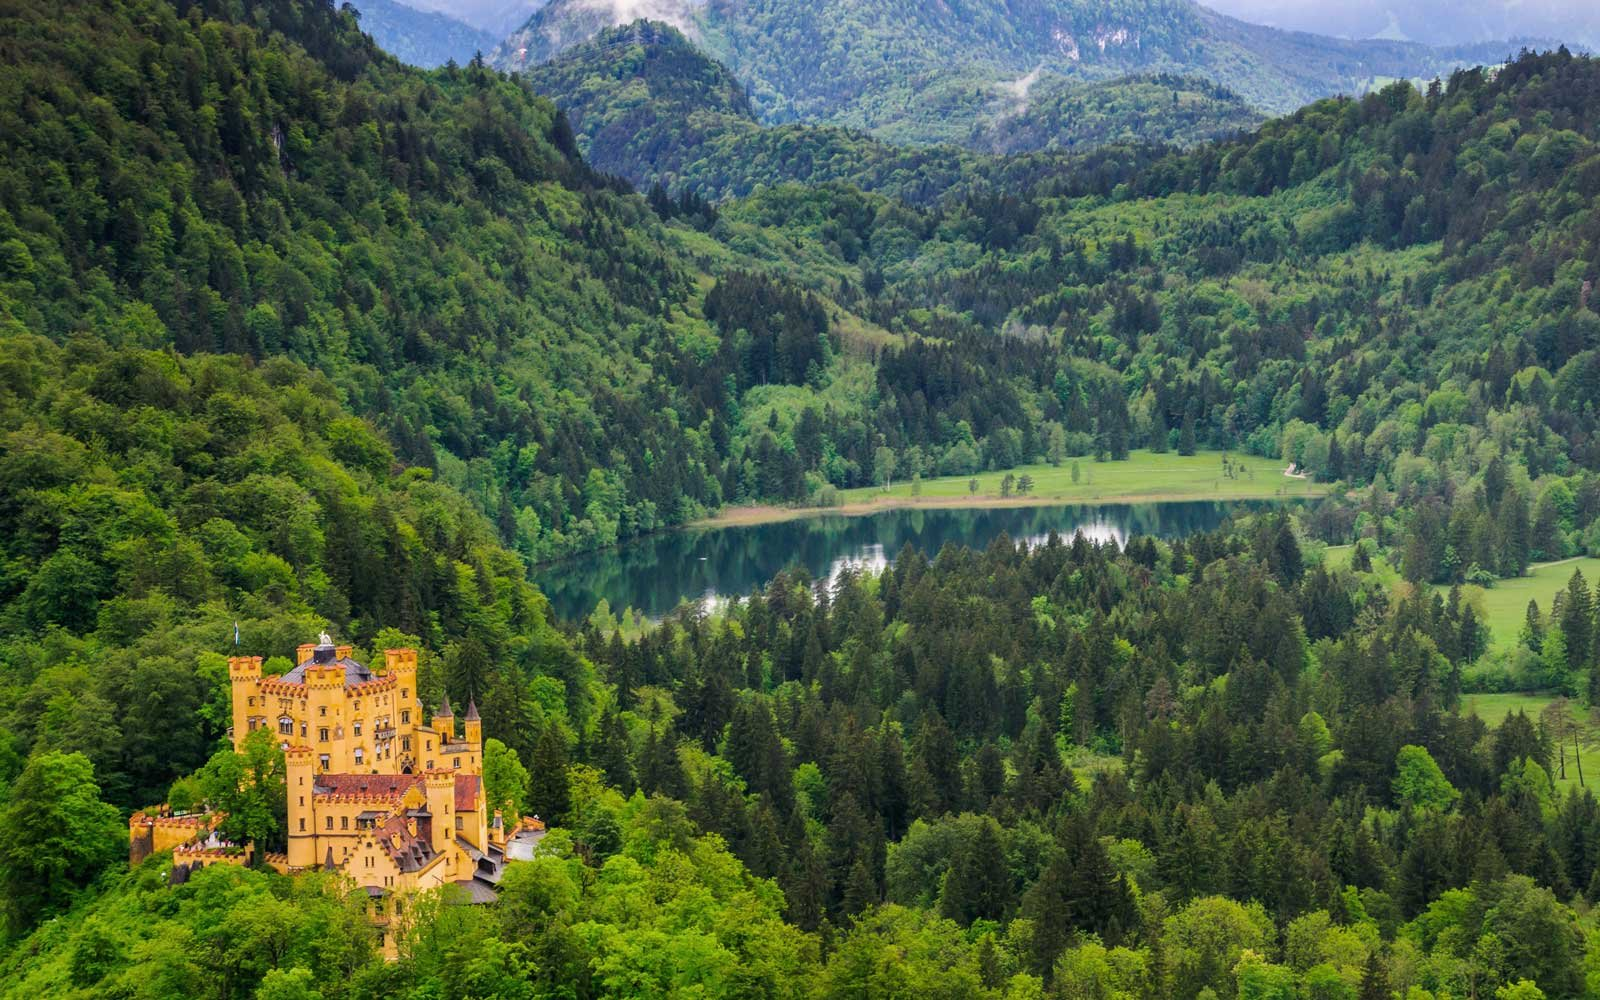 Affordable Vacation in Bavaria Germany